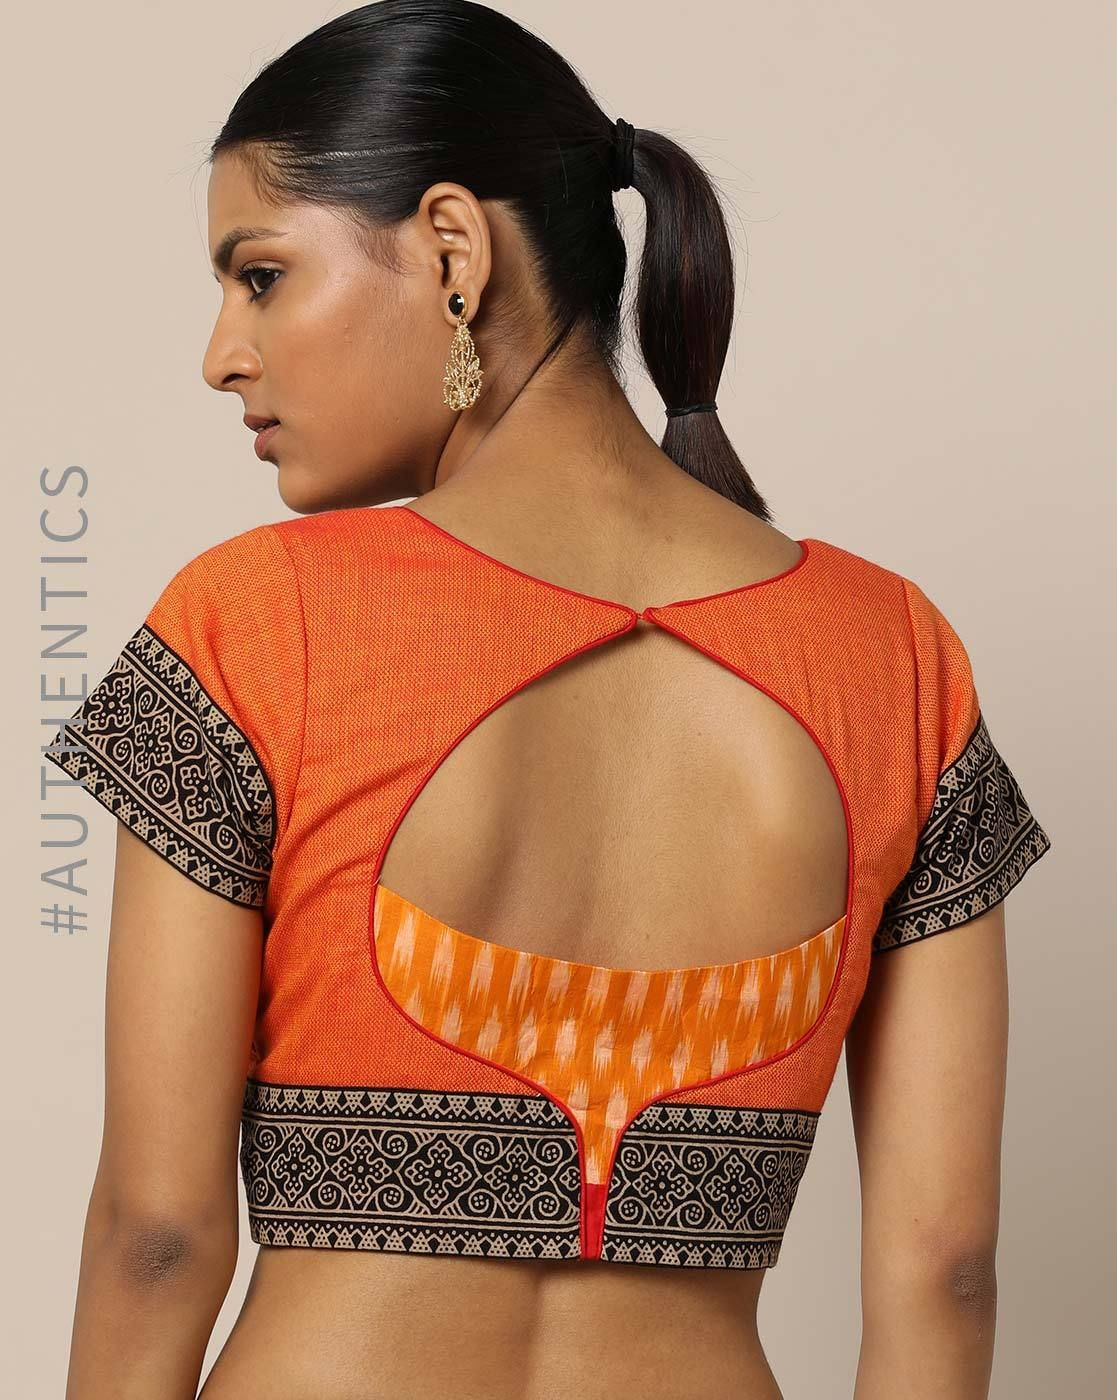 38 Simple And Stylish Blouse Back Neck Designs Keep Me Stylish Simple Blouse Designs Blouse Design Models Stylish Blouse Design